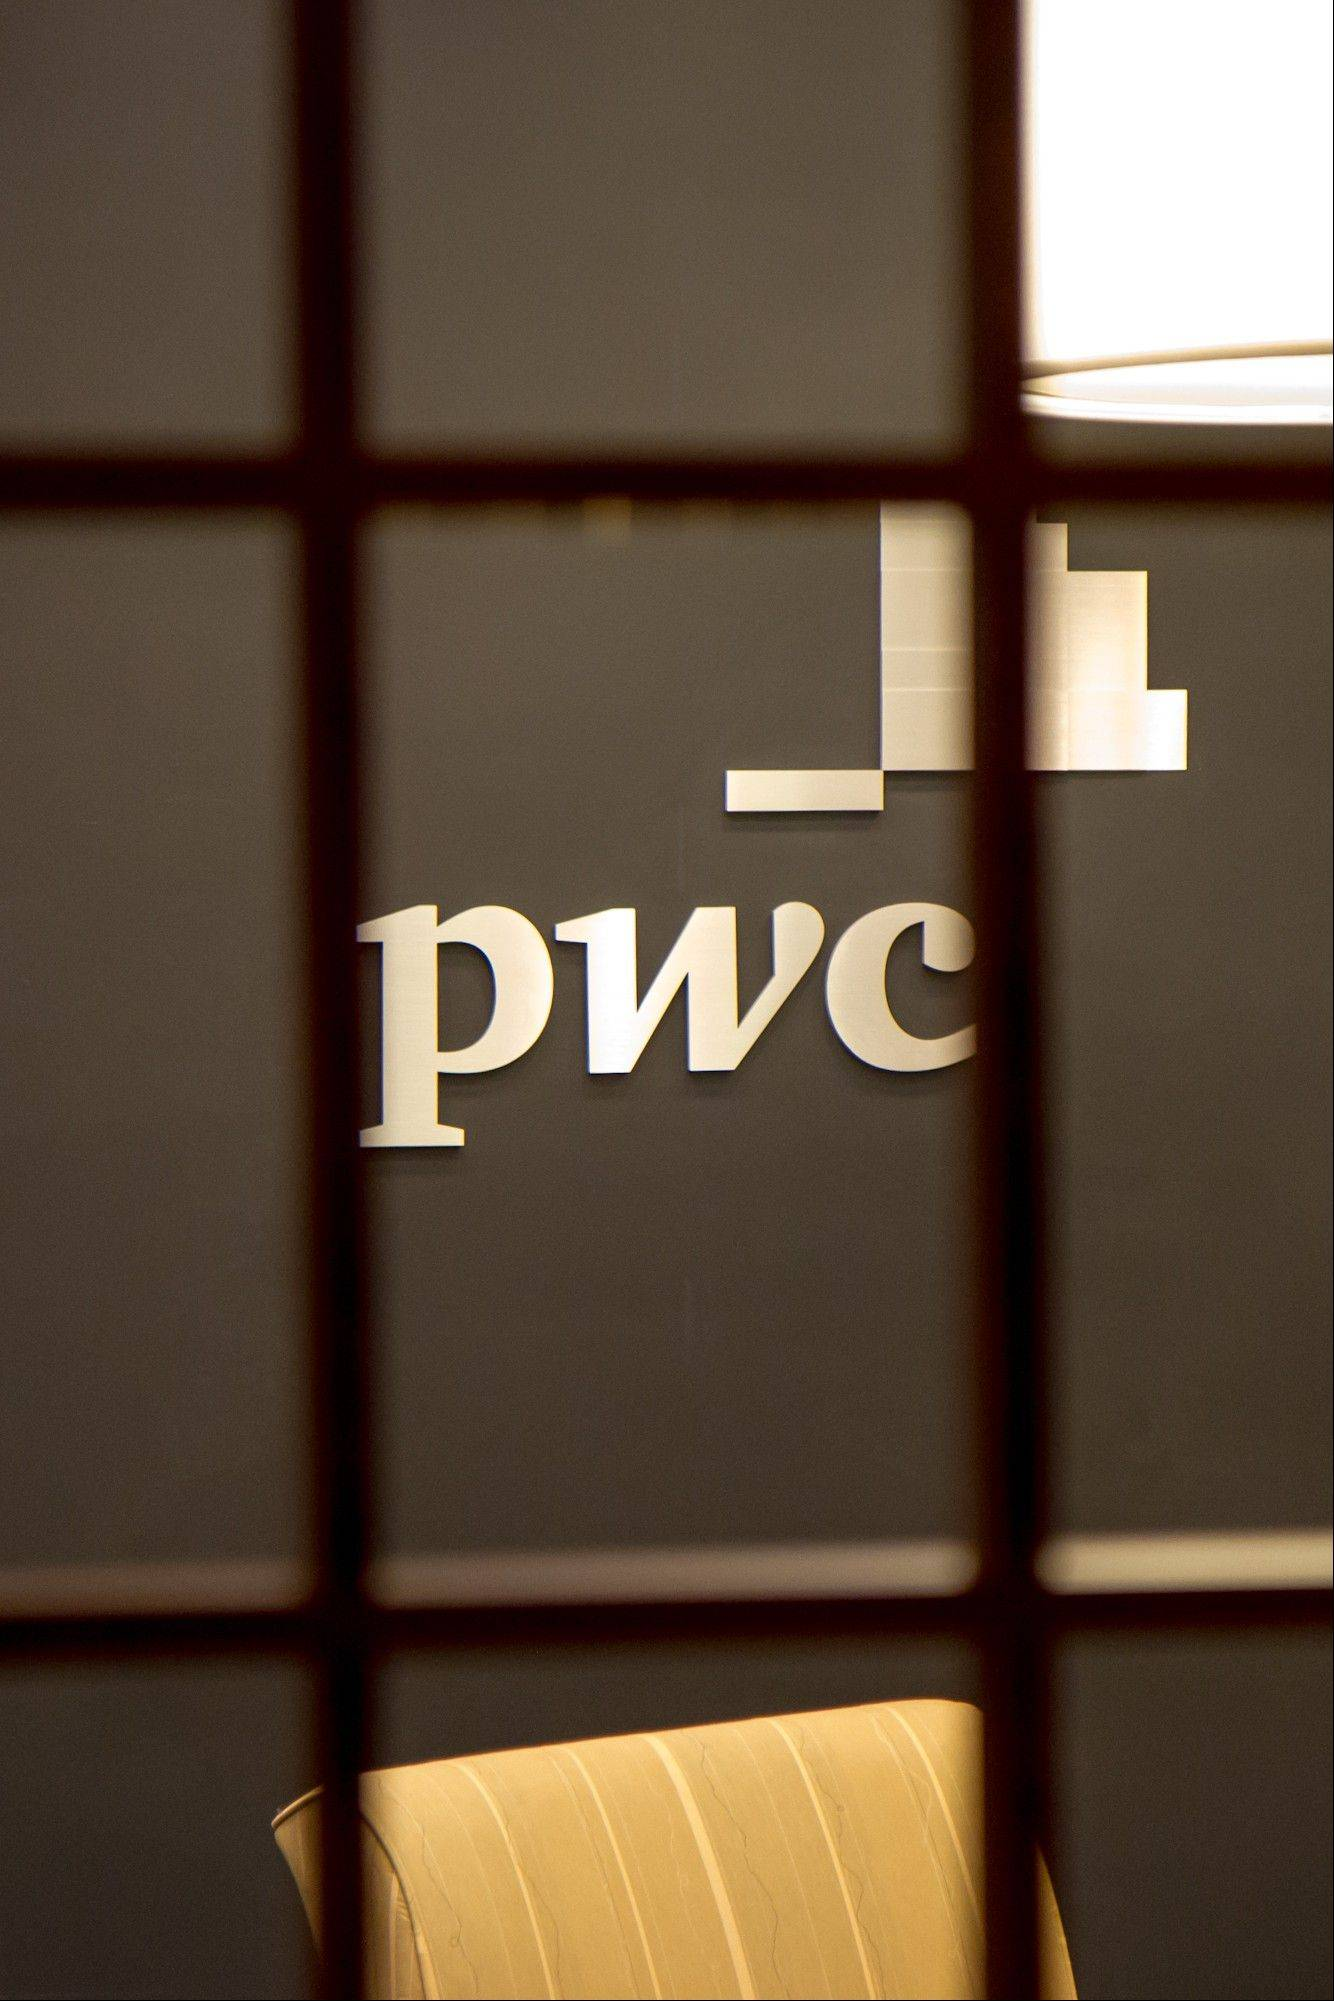 The PricewaterhouseCoopers office in Franklin, Tenn., is seen from outside its doors on Wednesday. The Secret Service said is investigating the reported theft of Mitt Romney's federal tax records during a break-in at the office. The company said there was no evidence Romney tax files were stolen.